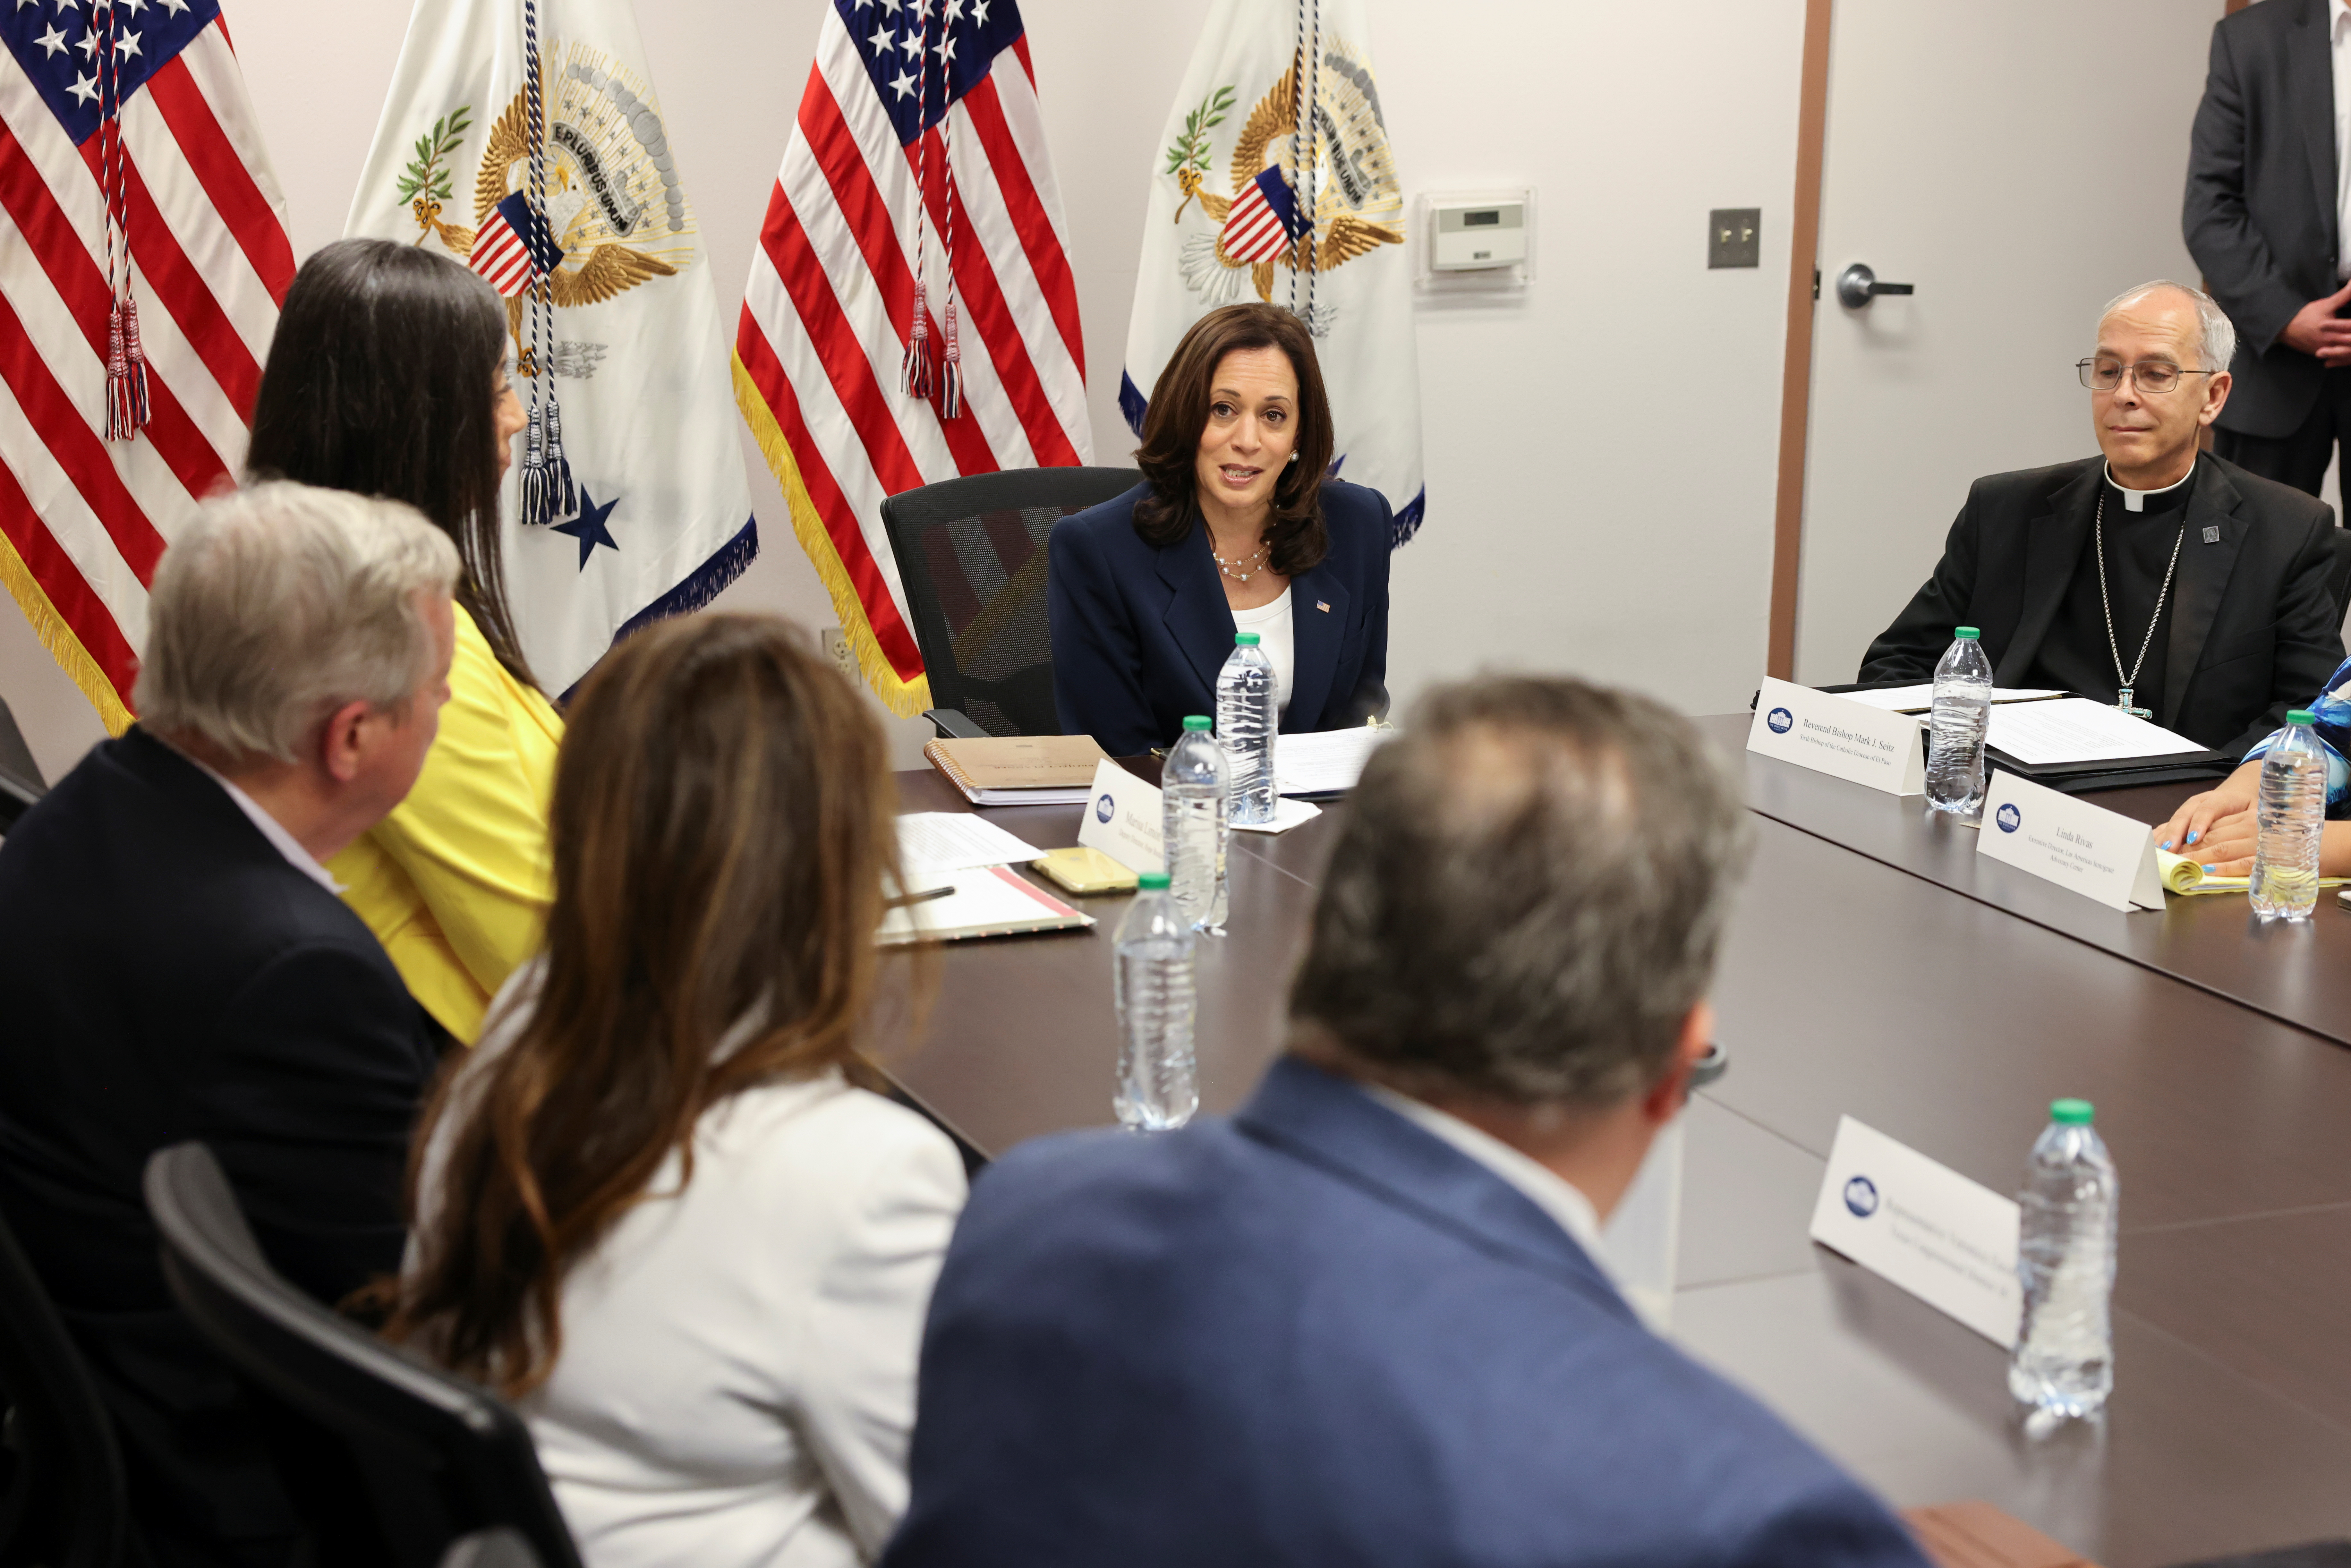 U.S. Vice President Kamala Harris takes part in a round table with faith and community leaders who are assisting with the processing of migrants seeking asylum, at Paso del Norte Port of Entry in El Paso, Texas, U.S., June 25, 2021. REUTERS/Evelyn Hockstein